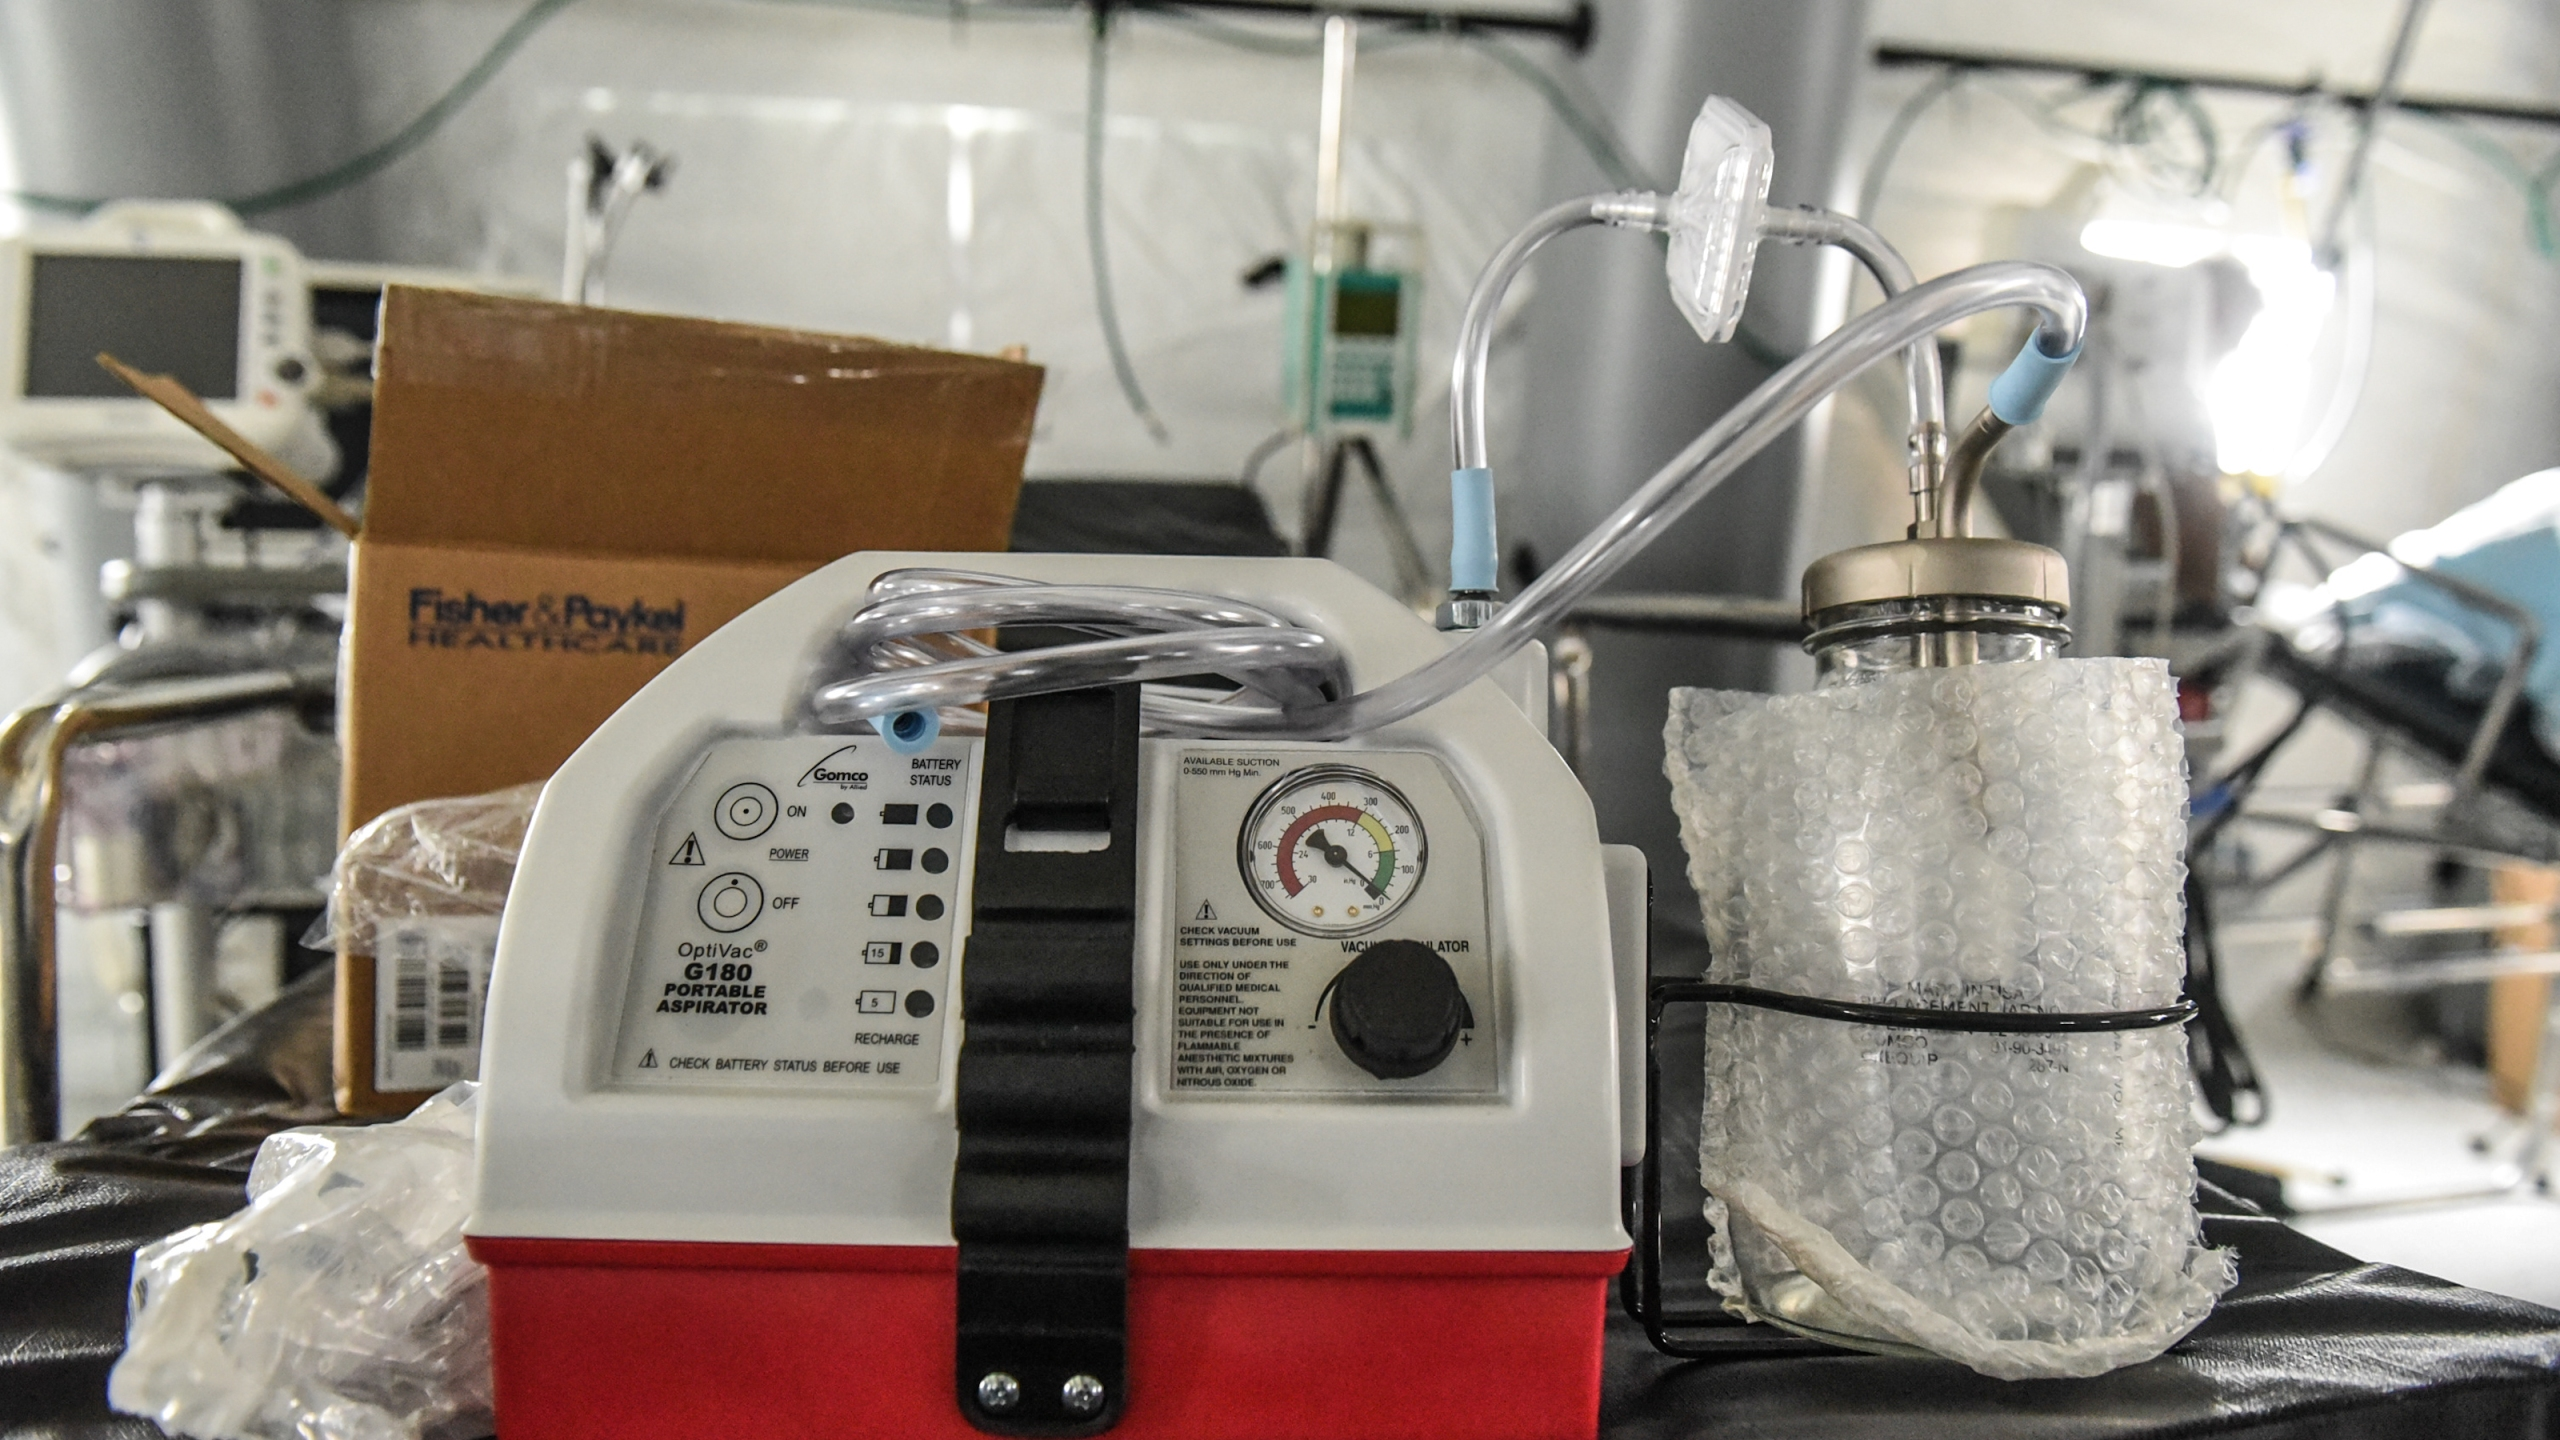 A ventilator and other hospital equipment is seen in an emergency field hospital to aid in the COVID-19 pandemic in Central Park on March 30, 2020, in New York City. (Stephanie Keith/Getty Images)